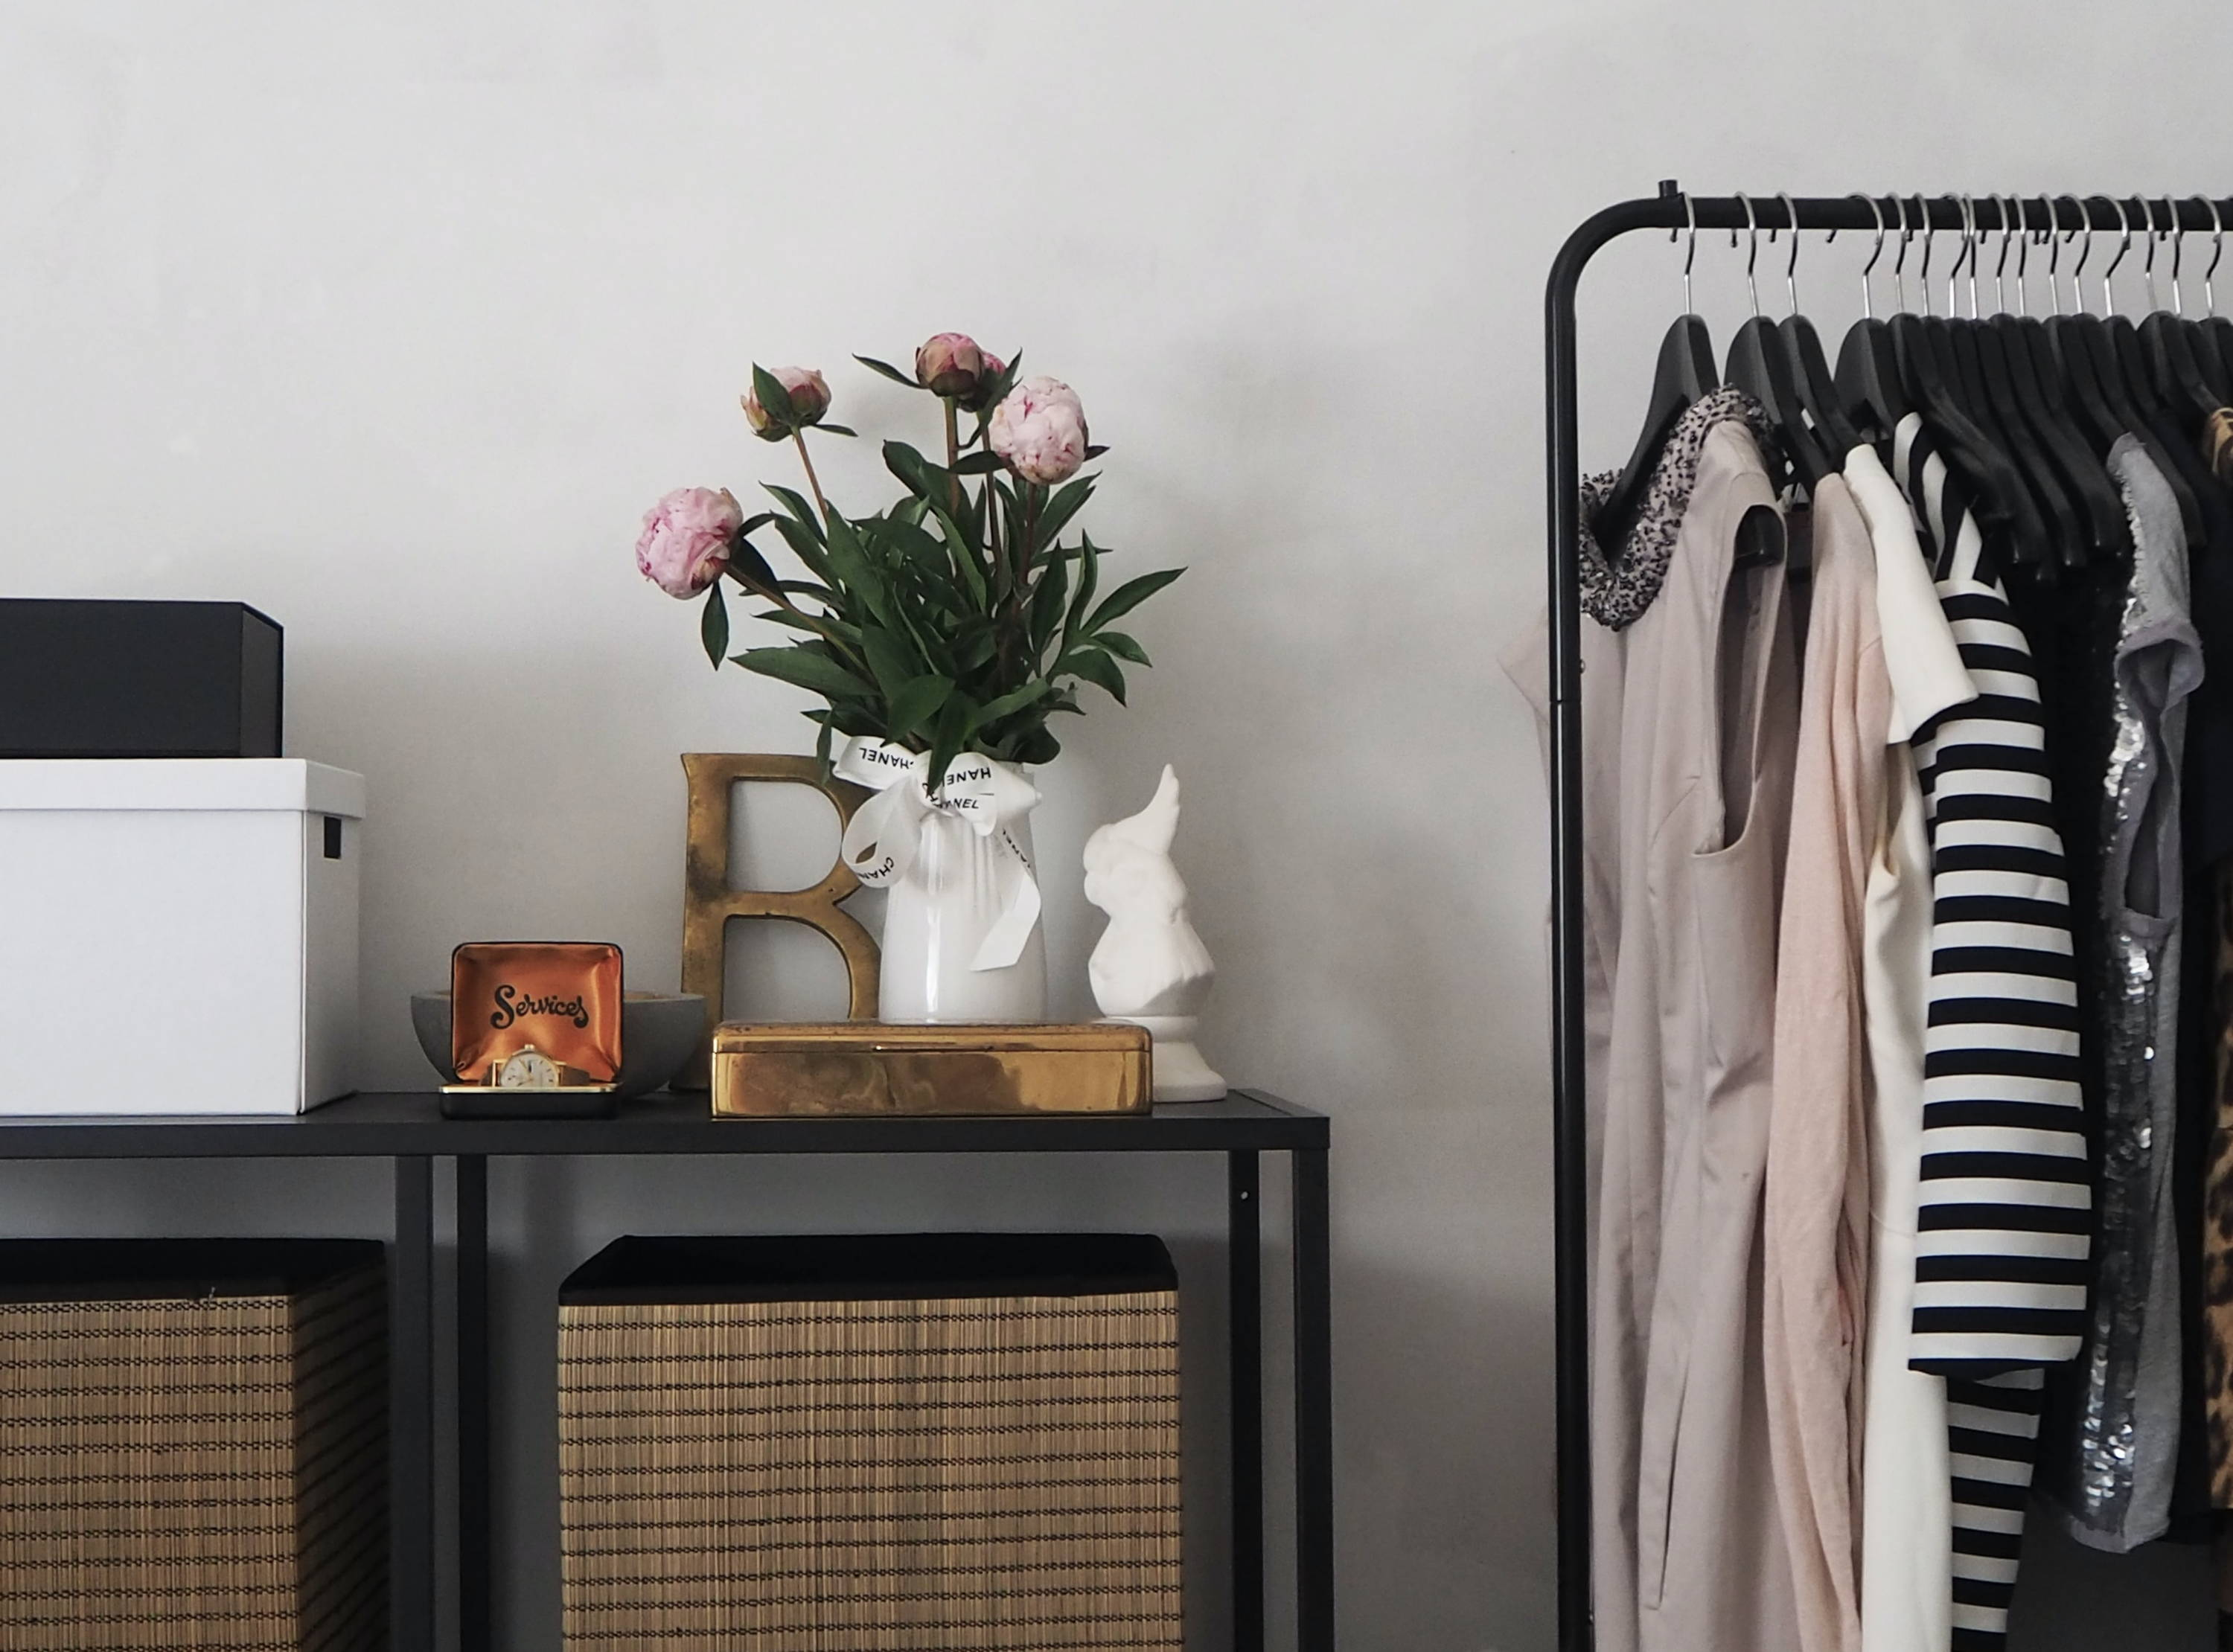 Stylish storage spaces next to a clothes rack